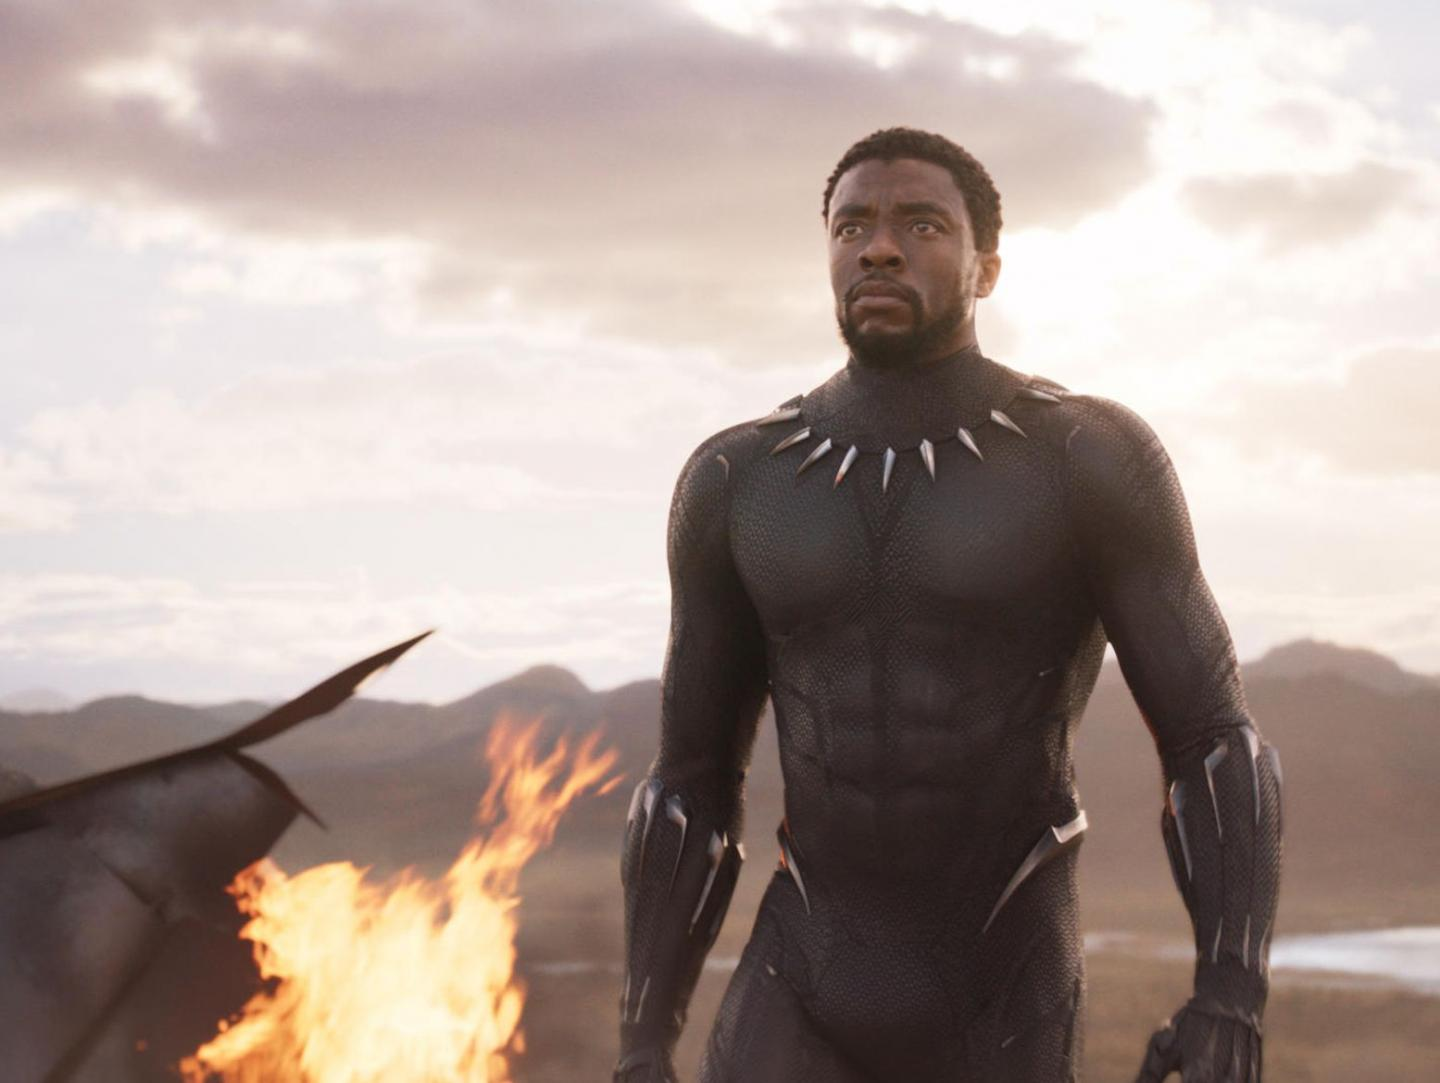 Heres What Reconstruction After the Wakandan Civil War Would Have Looked Like